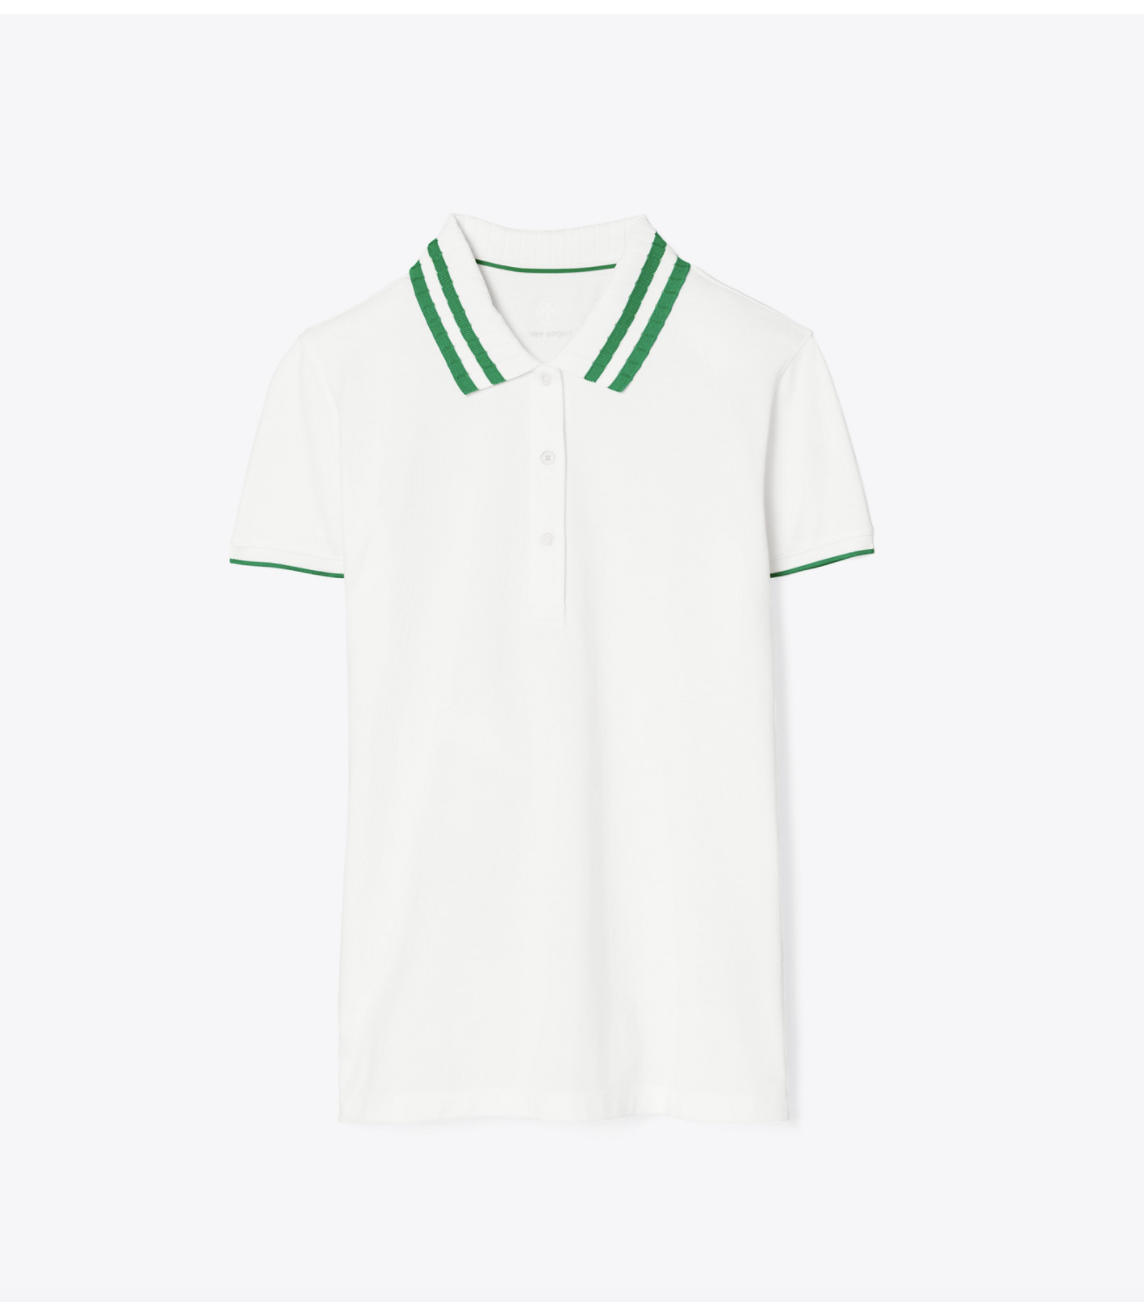 Tory Burch Performance Piqué Pleated-Collar Polo